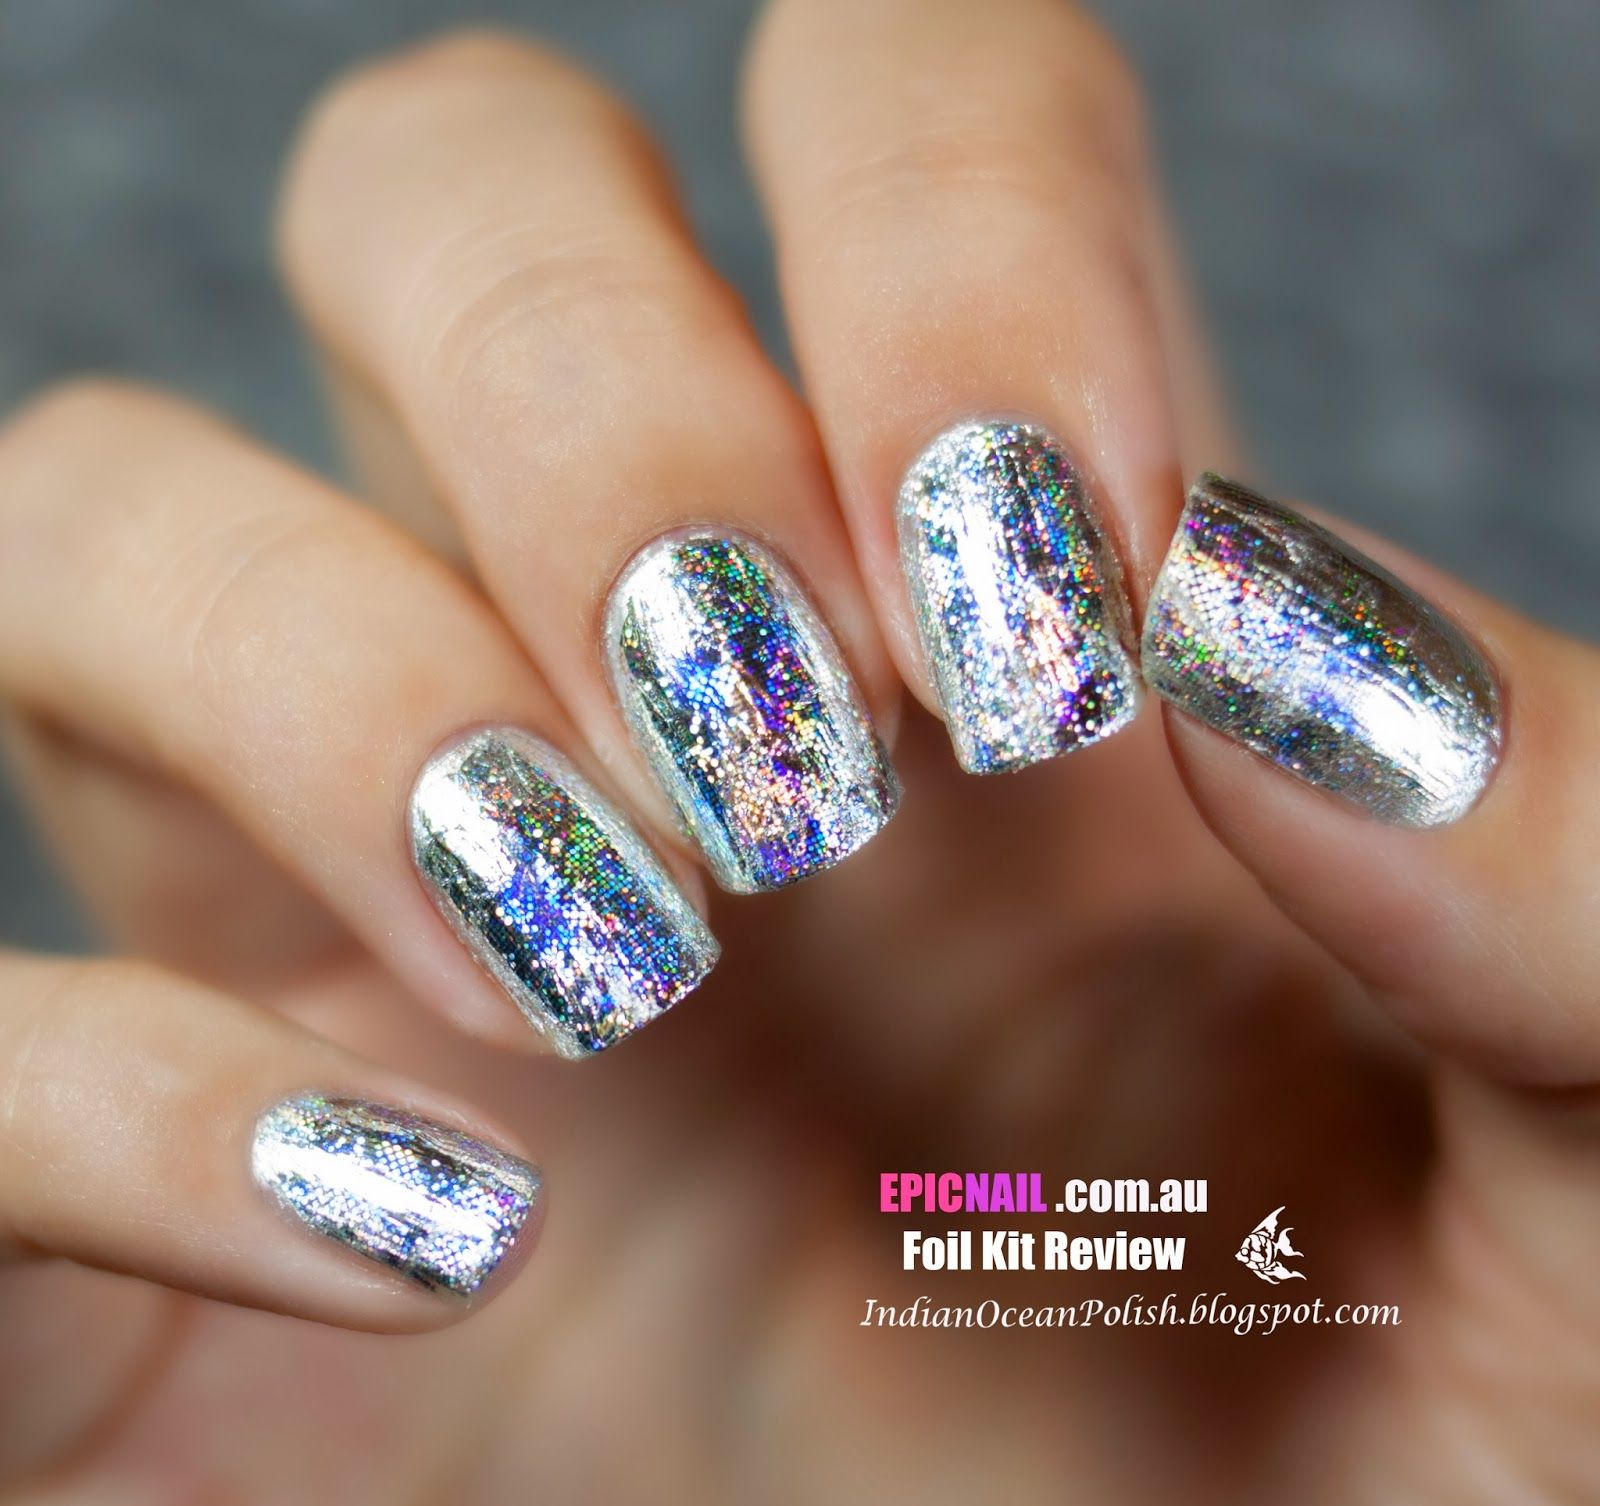 Indian Ocean Polish: Review: Epicnail New Nail Foil Kits ...